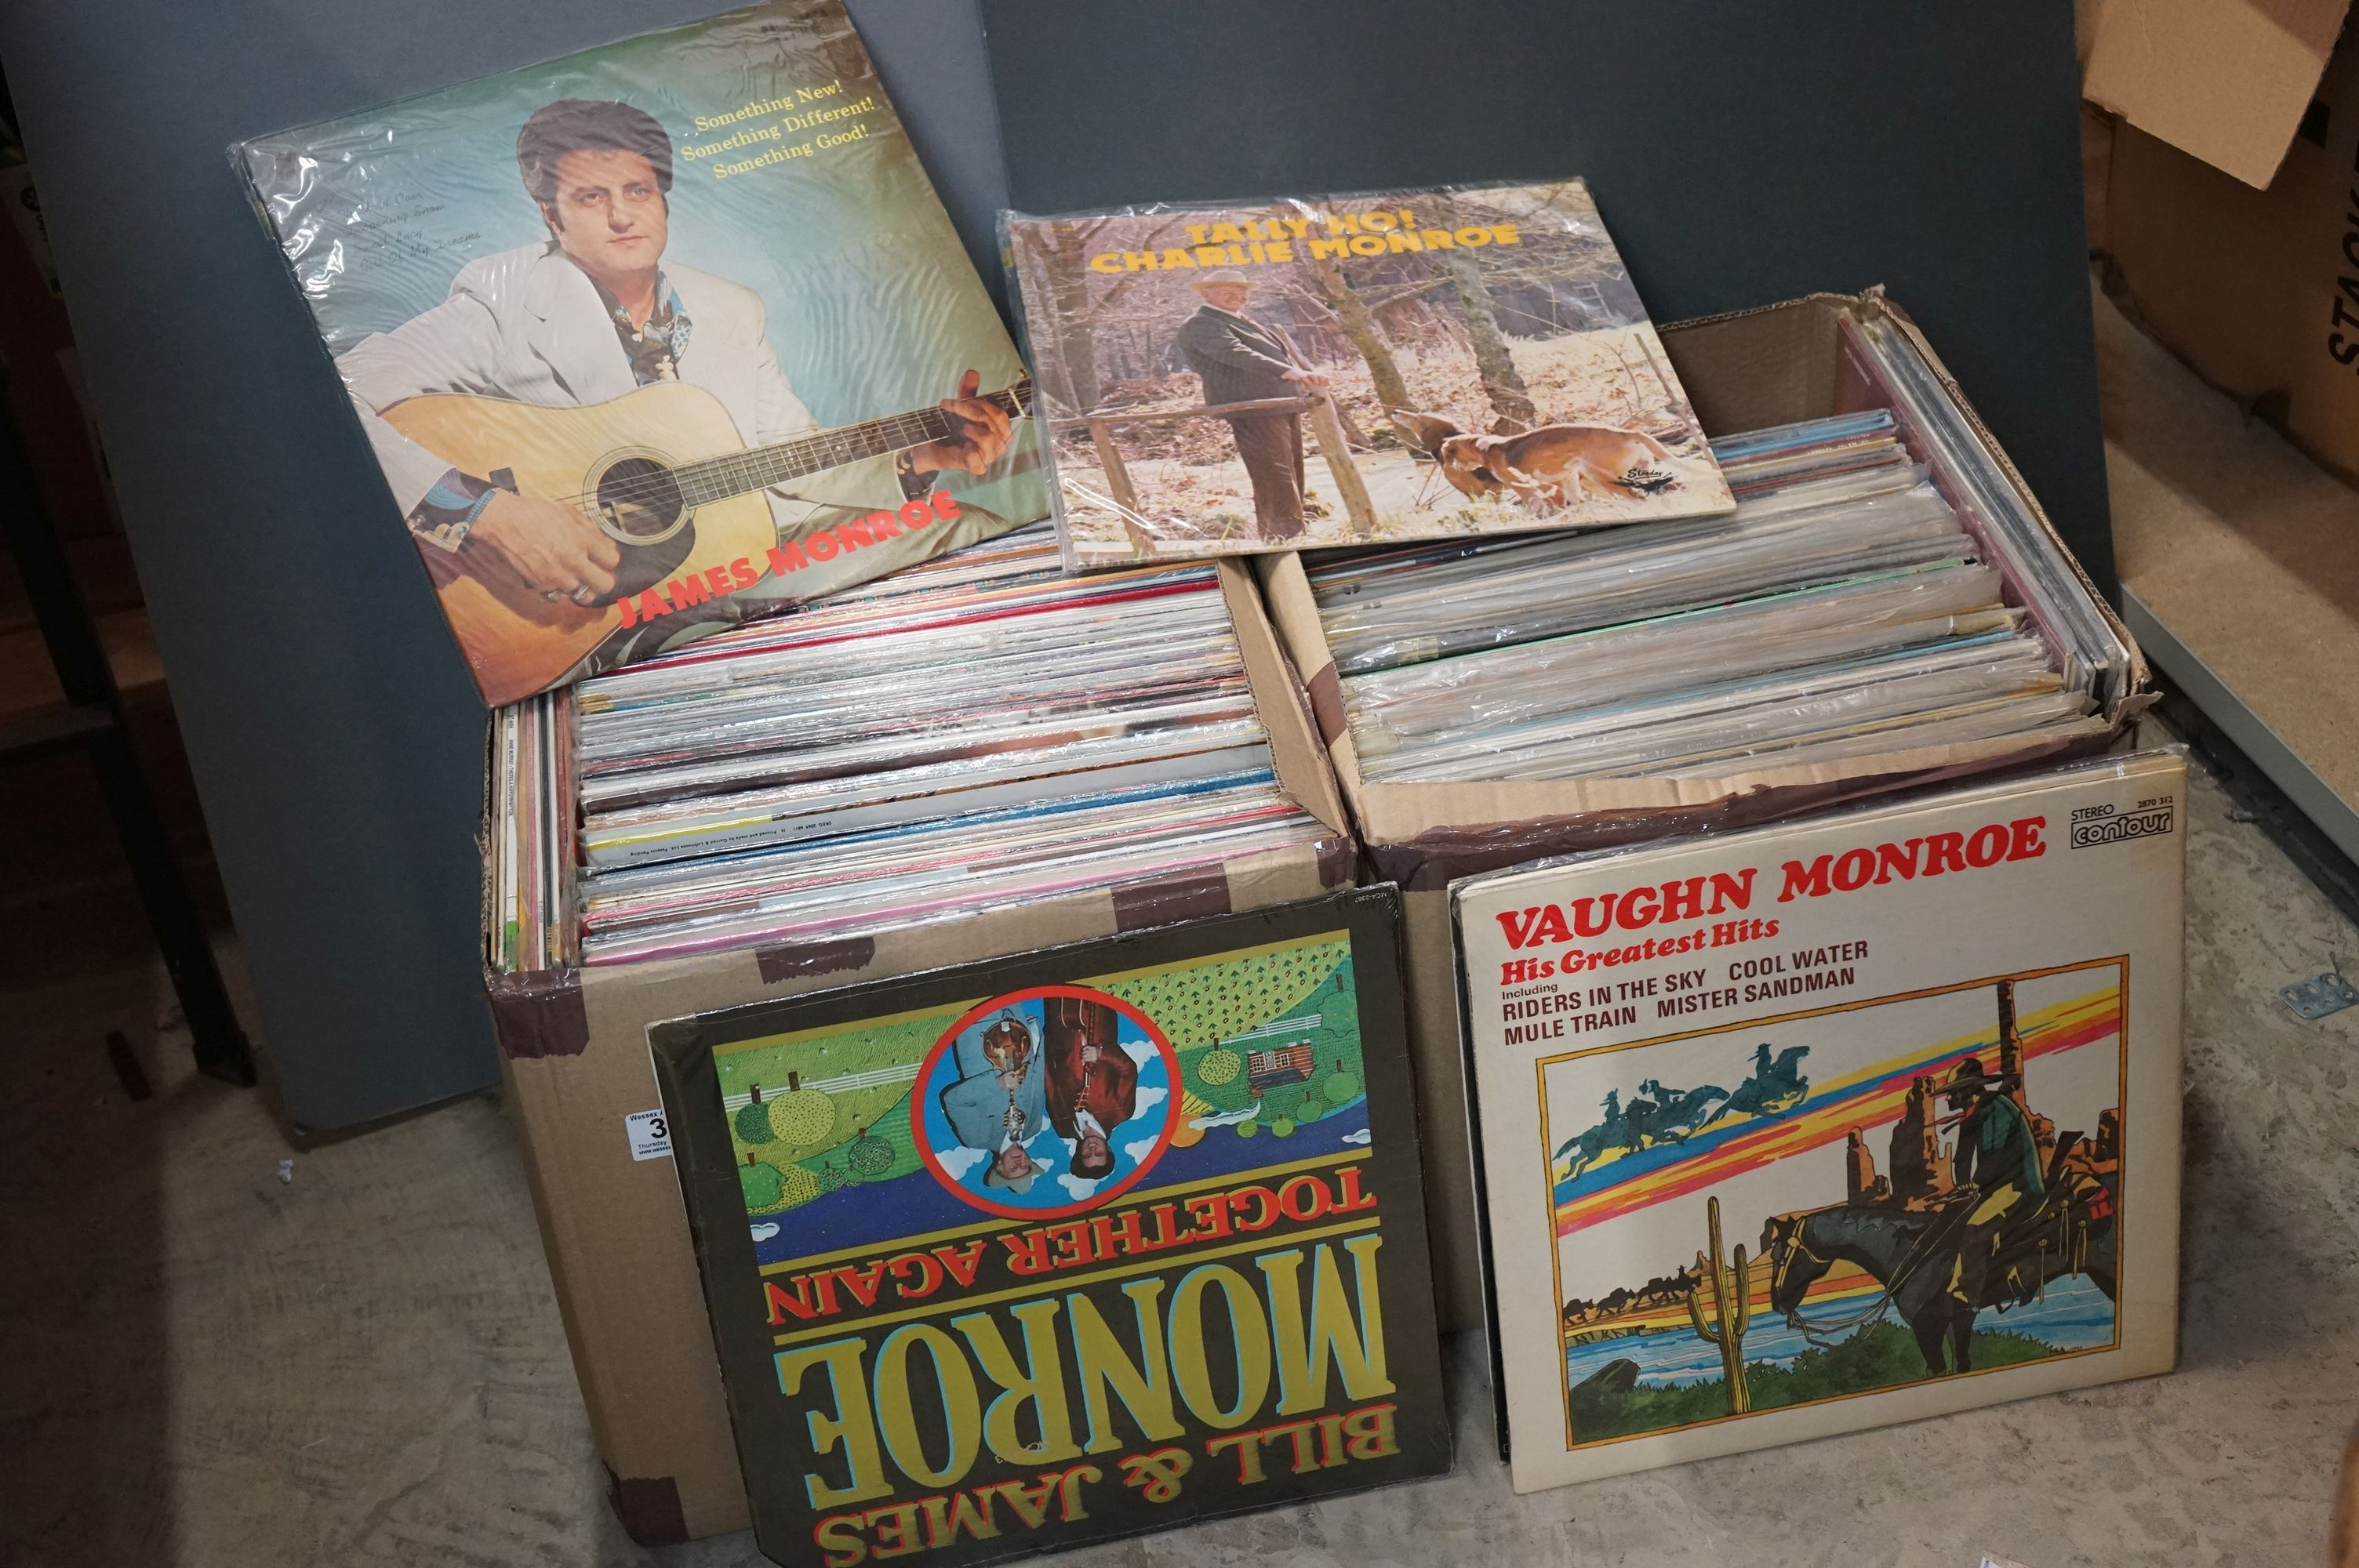 Vinyl - Over 200 LPs featuring Country and other genres, sleeves and vinyl vg+ (two boxes)